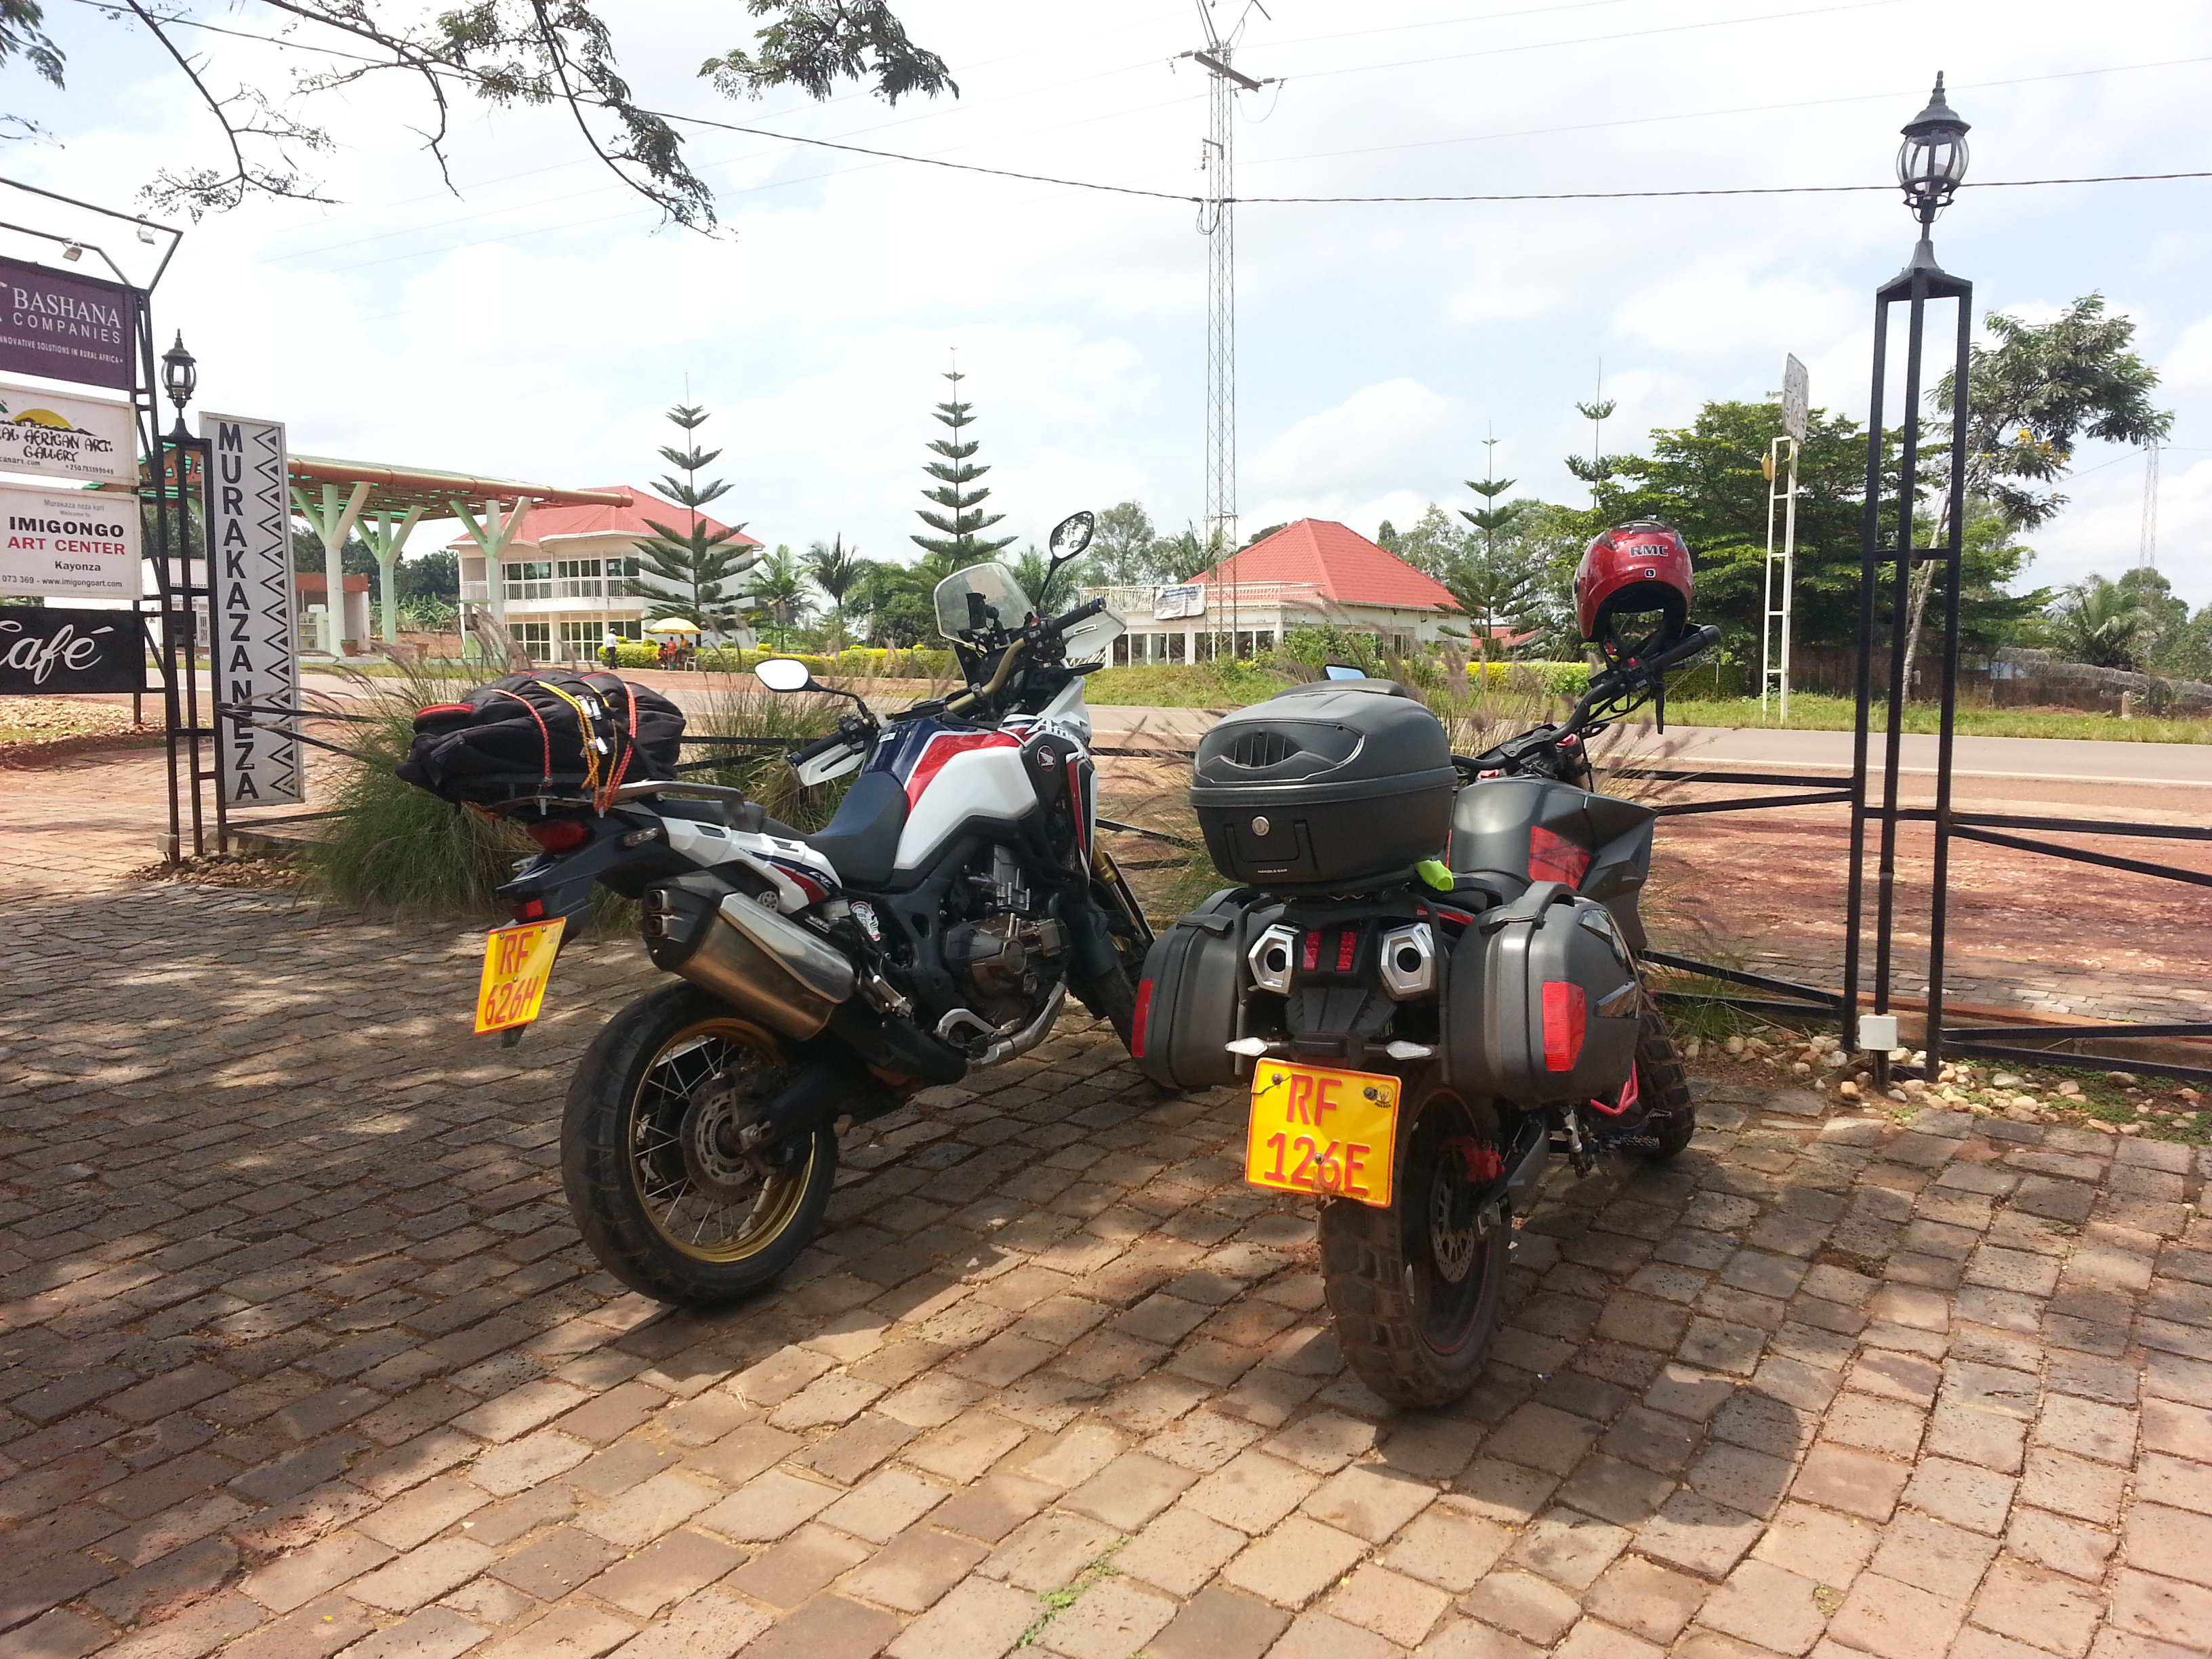 Encounter with a fellow biker in Kayonza